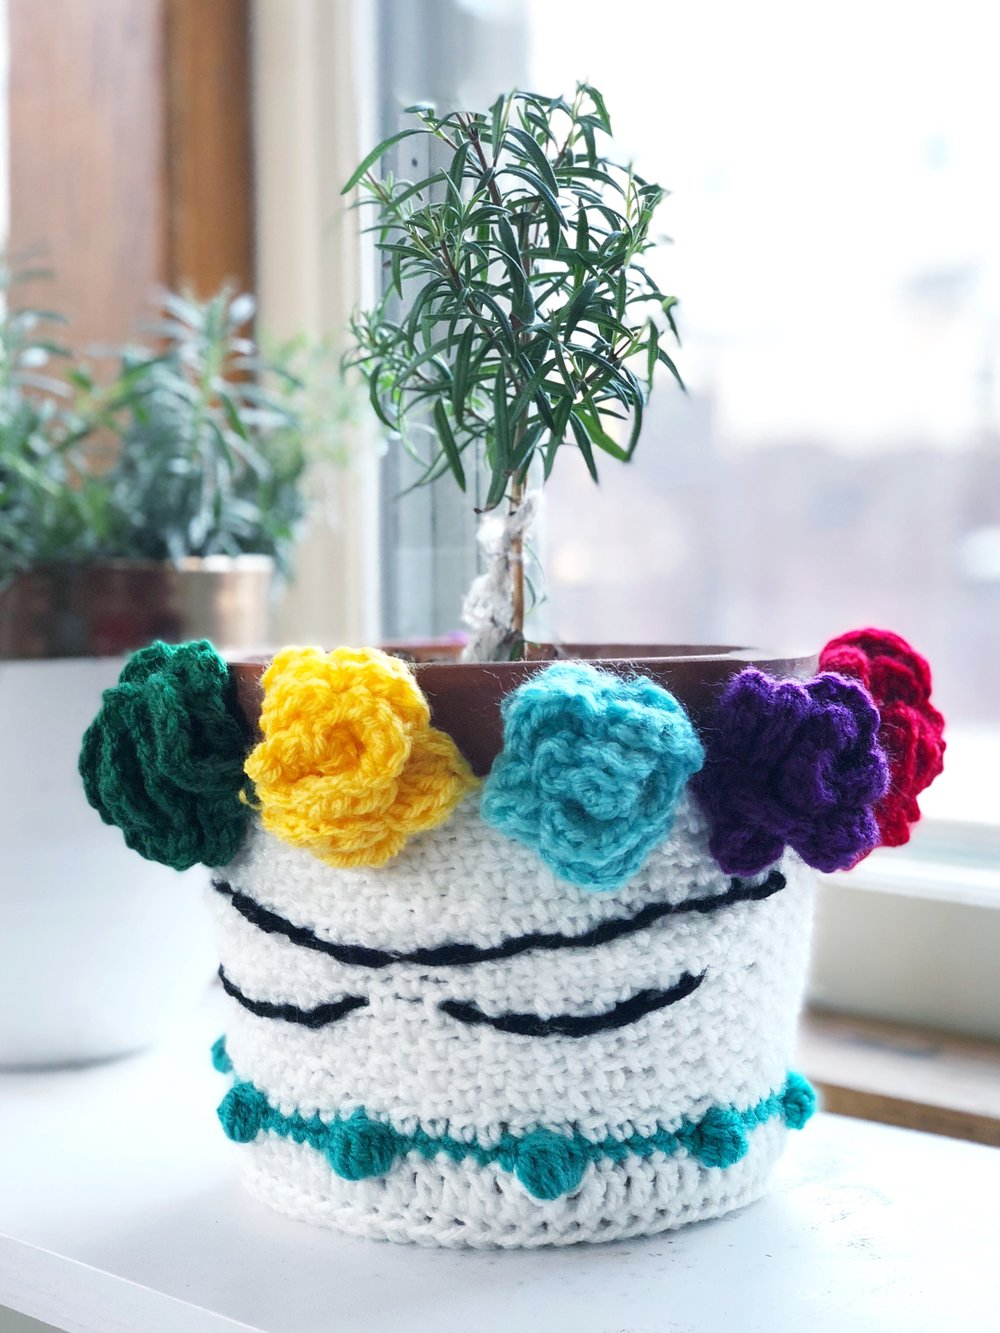 Crocheted Frída Kahlo Plant Cozy